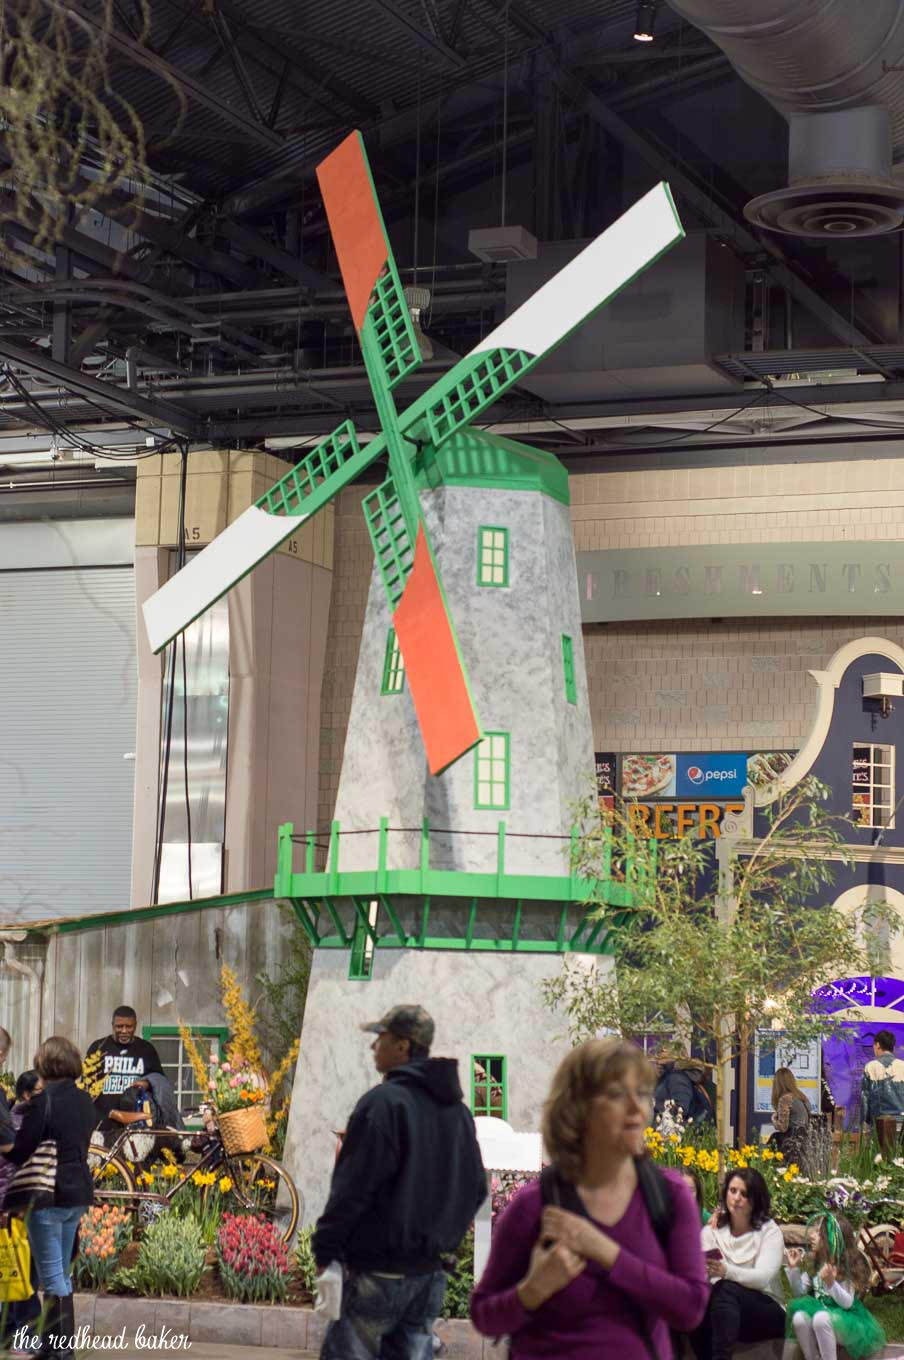 I'm sharing a few photos from this year's annual Philadelphia Flower Show, an event put on the Philadelphia Horticultural Society. This year's theme is Holland.